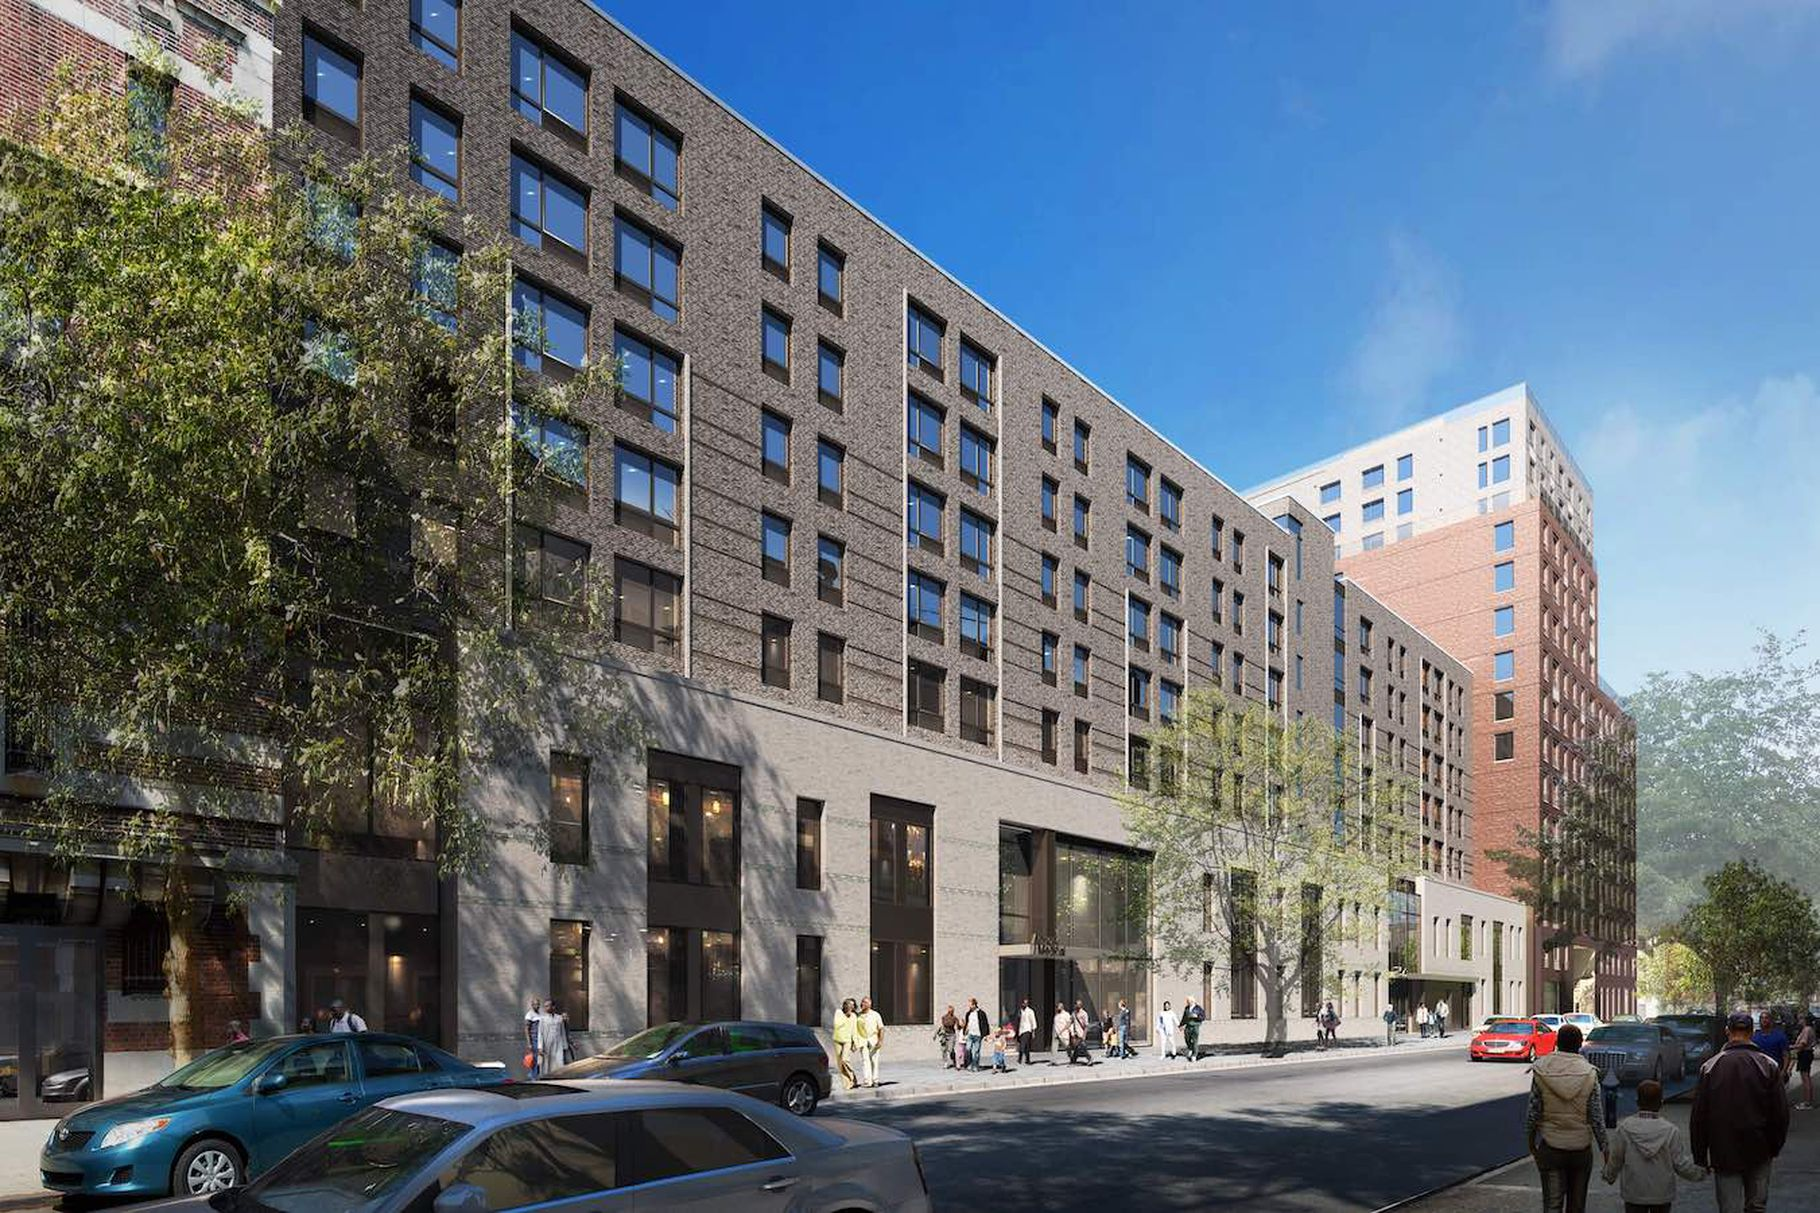 New Renderings Revealed Of The Bedford-Union Armory Redevelopment Project In Crown Height